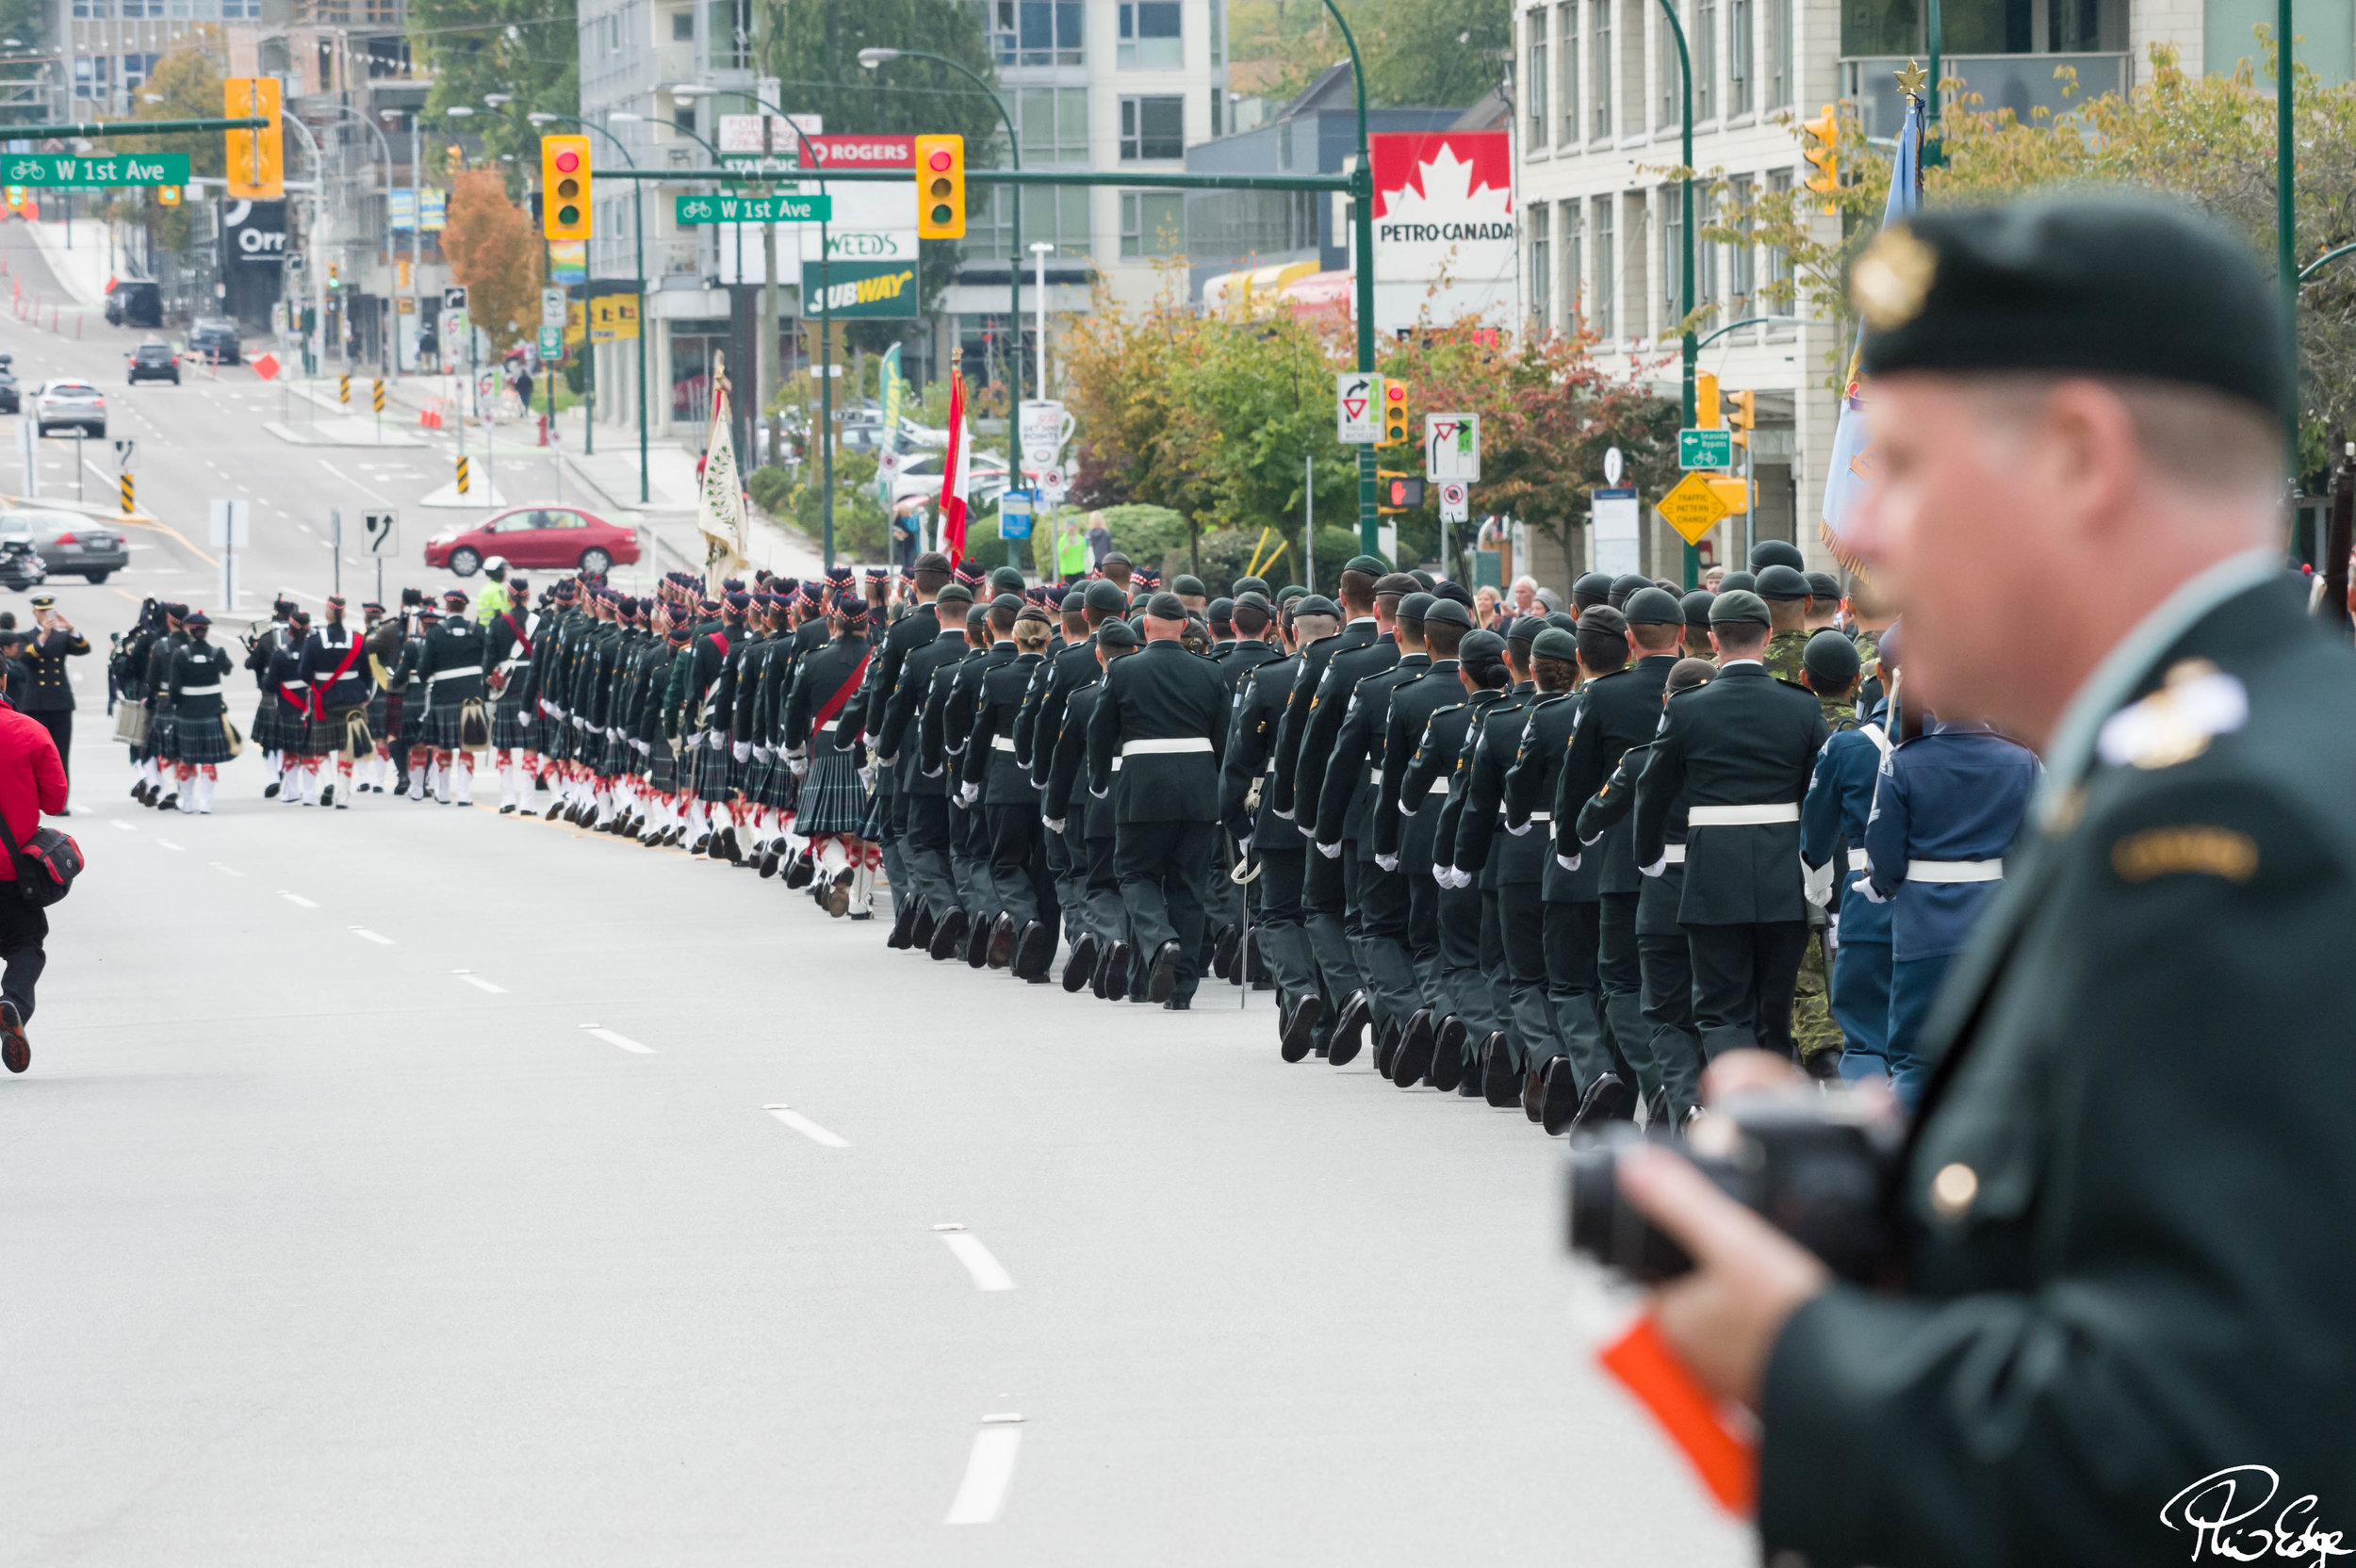 Seaforth march from Jericho to Armoury 24 Sep 16 No-381.jpg